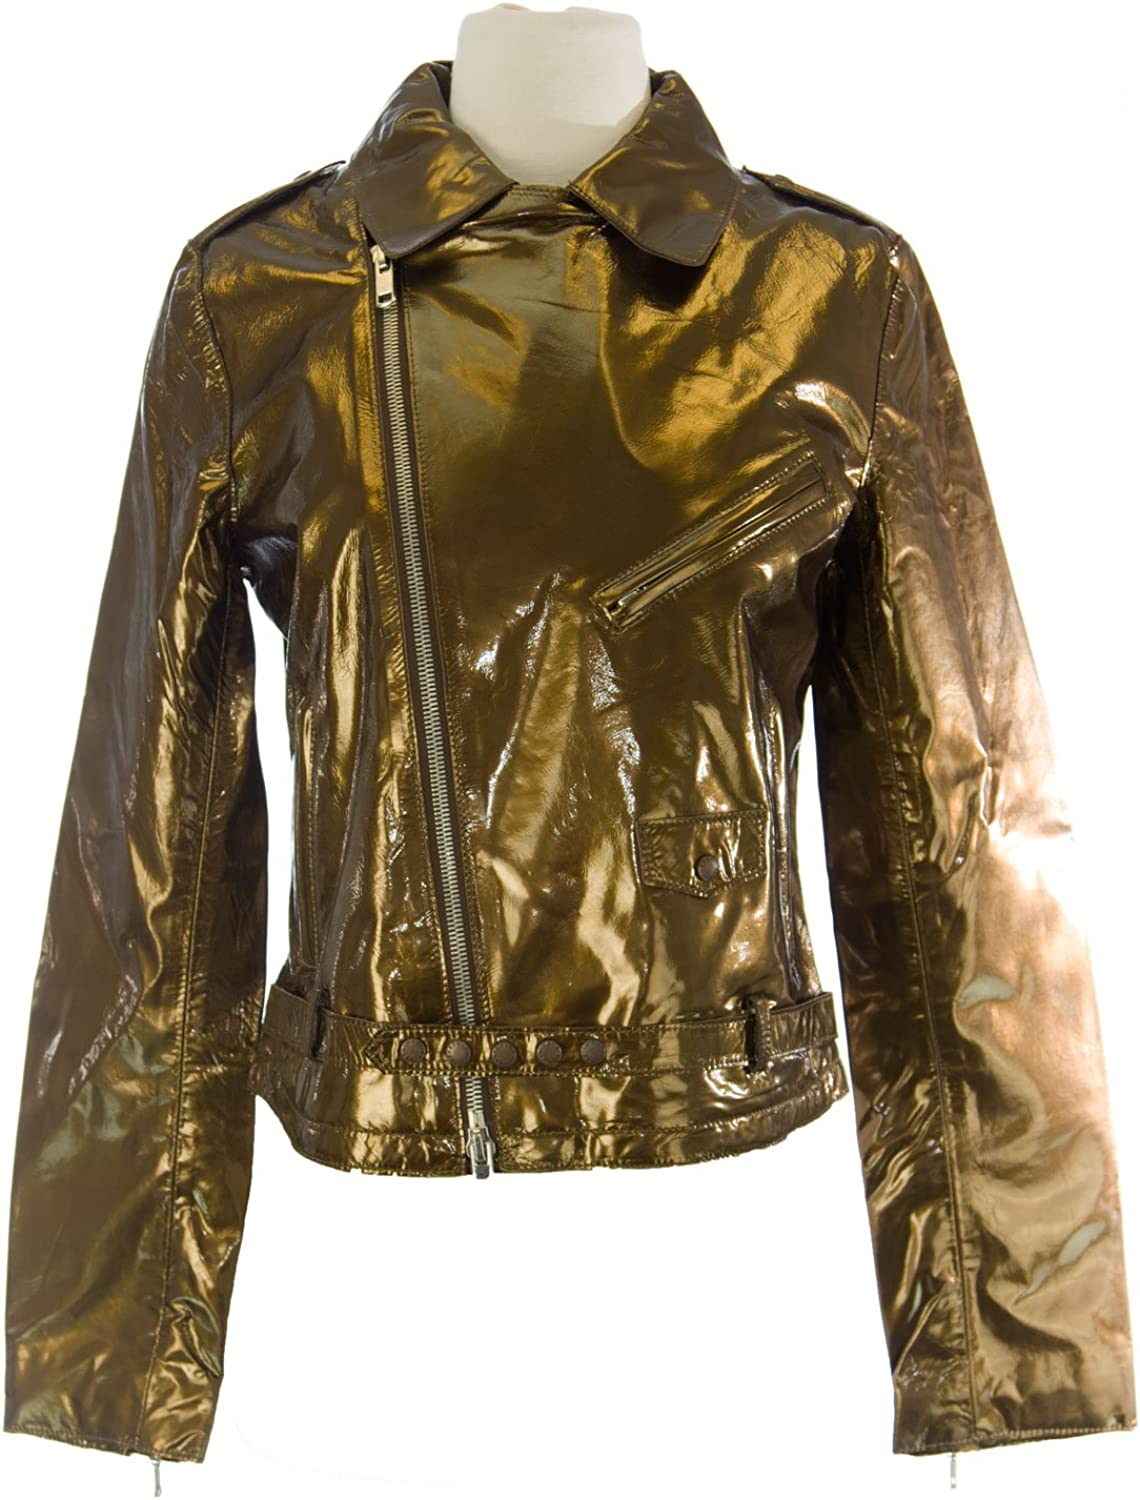 CUSTO BARCELONA Women's Perfecto gold Diagnal Zip Jacket R793004